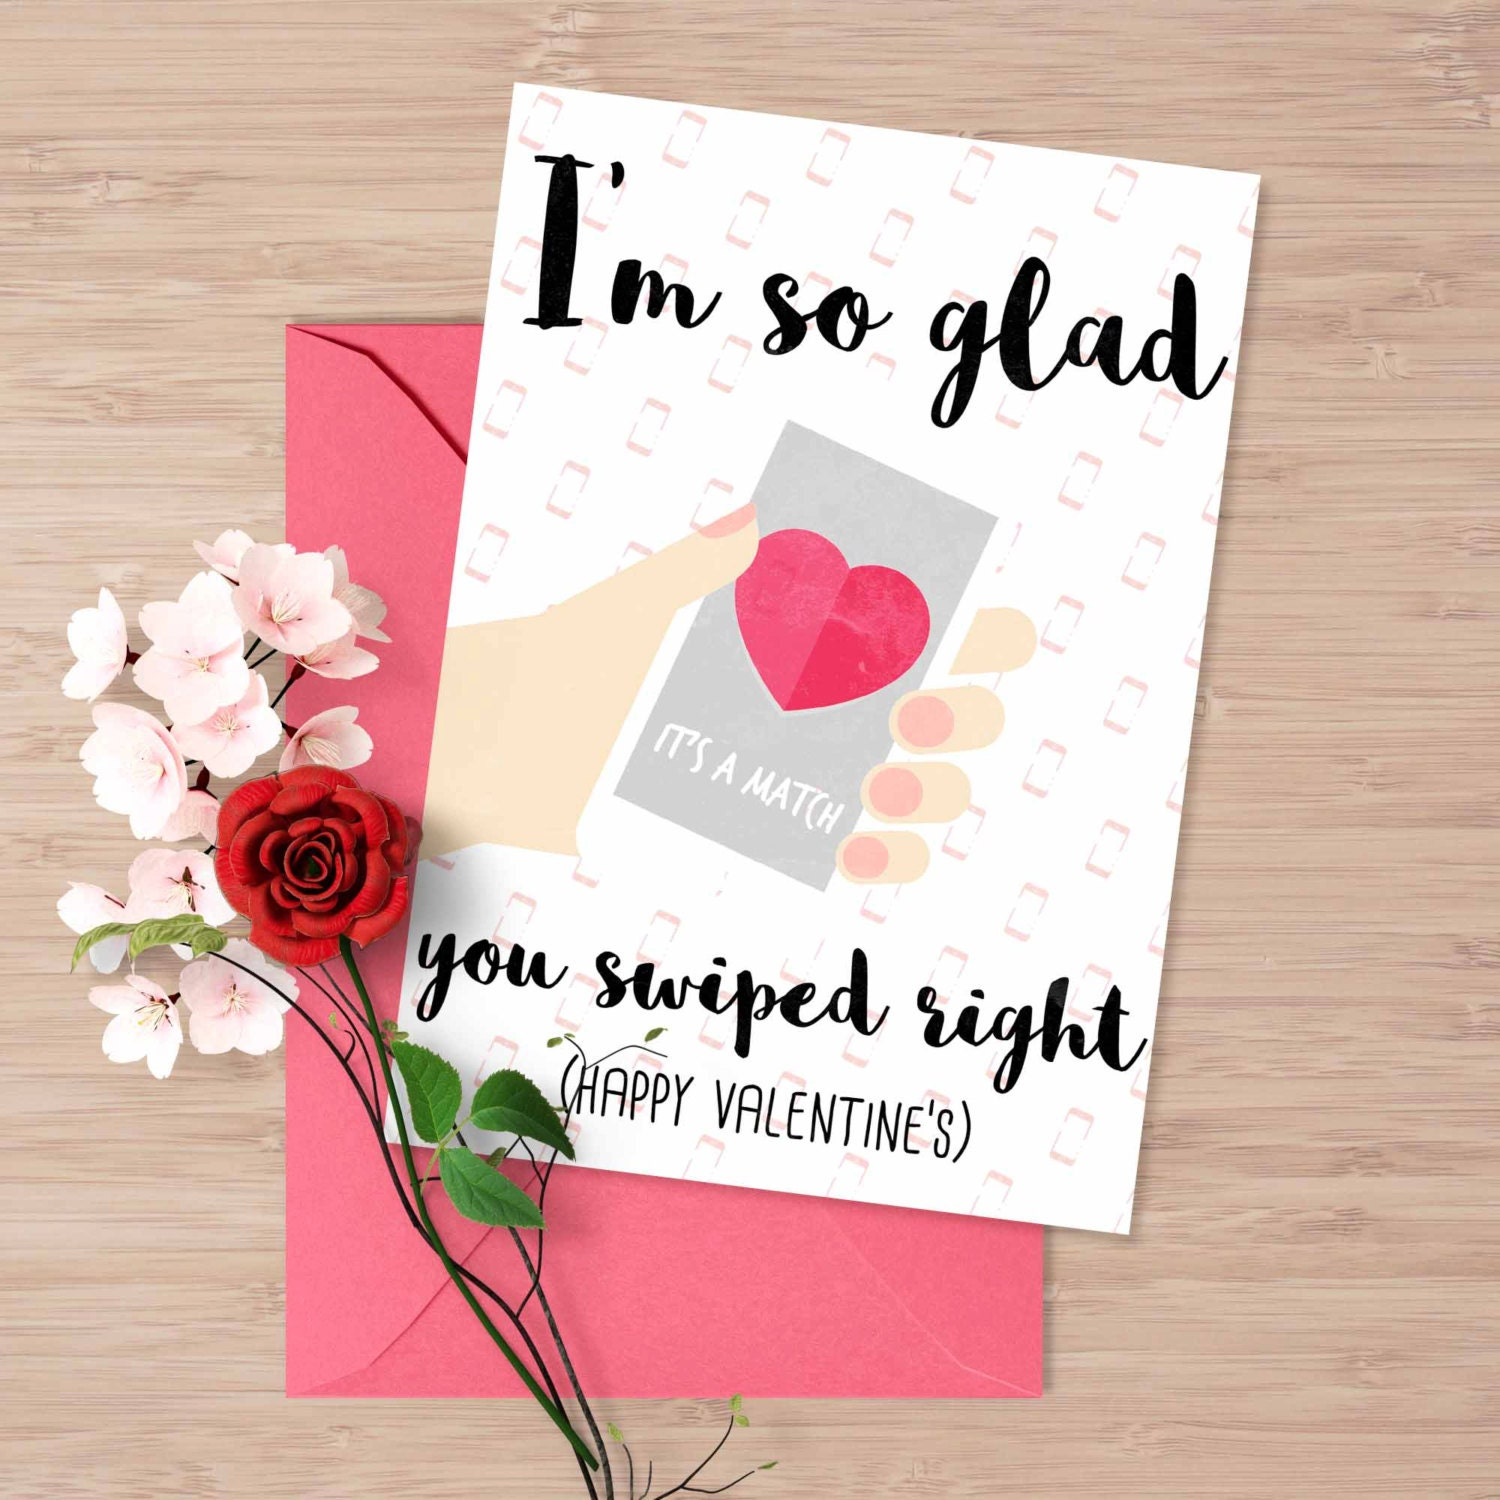 Valentines Day cards Etsy – What to Right on a Valentine Day Card